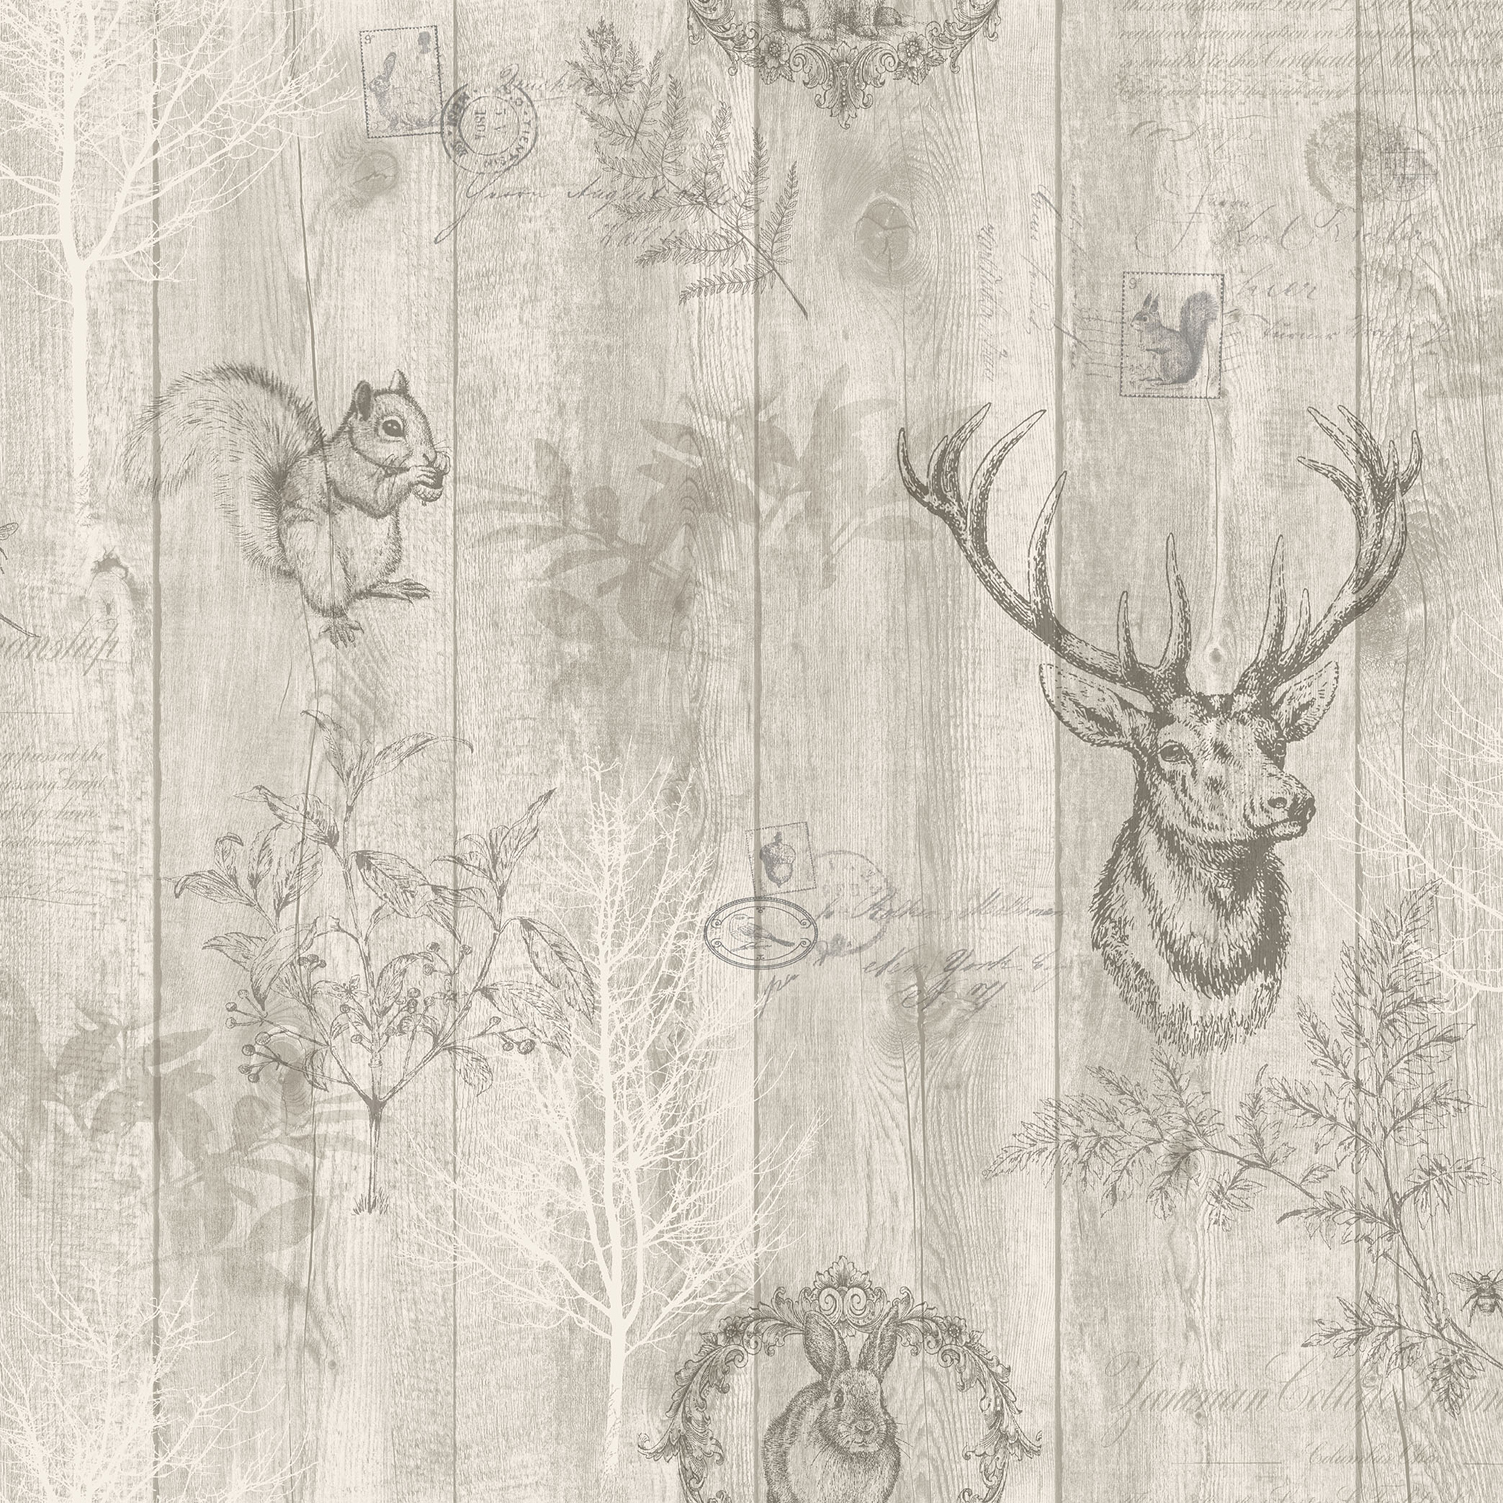 Holden Decor Statement Stag Wood Panel Wallpaper 90091 Beige